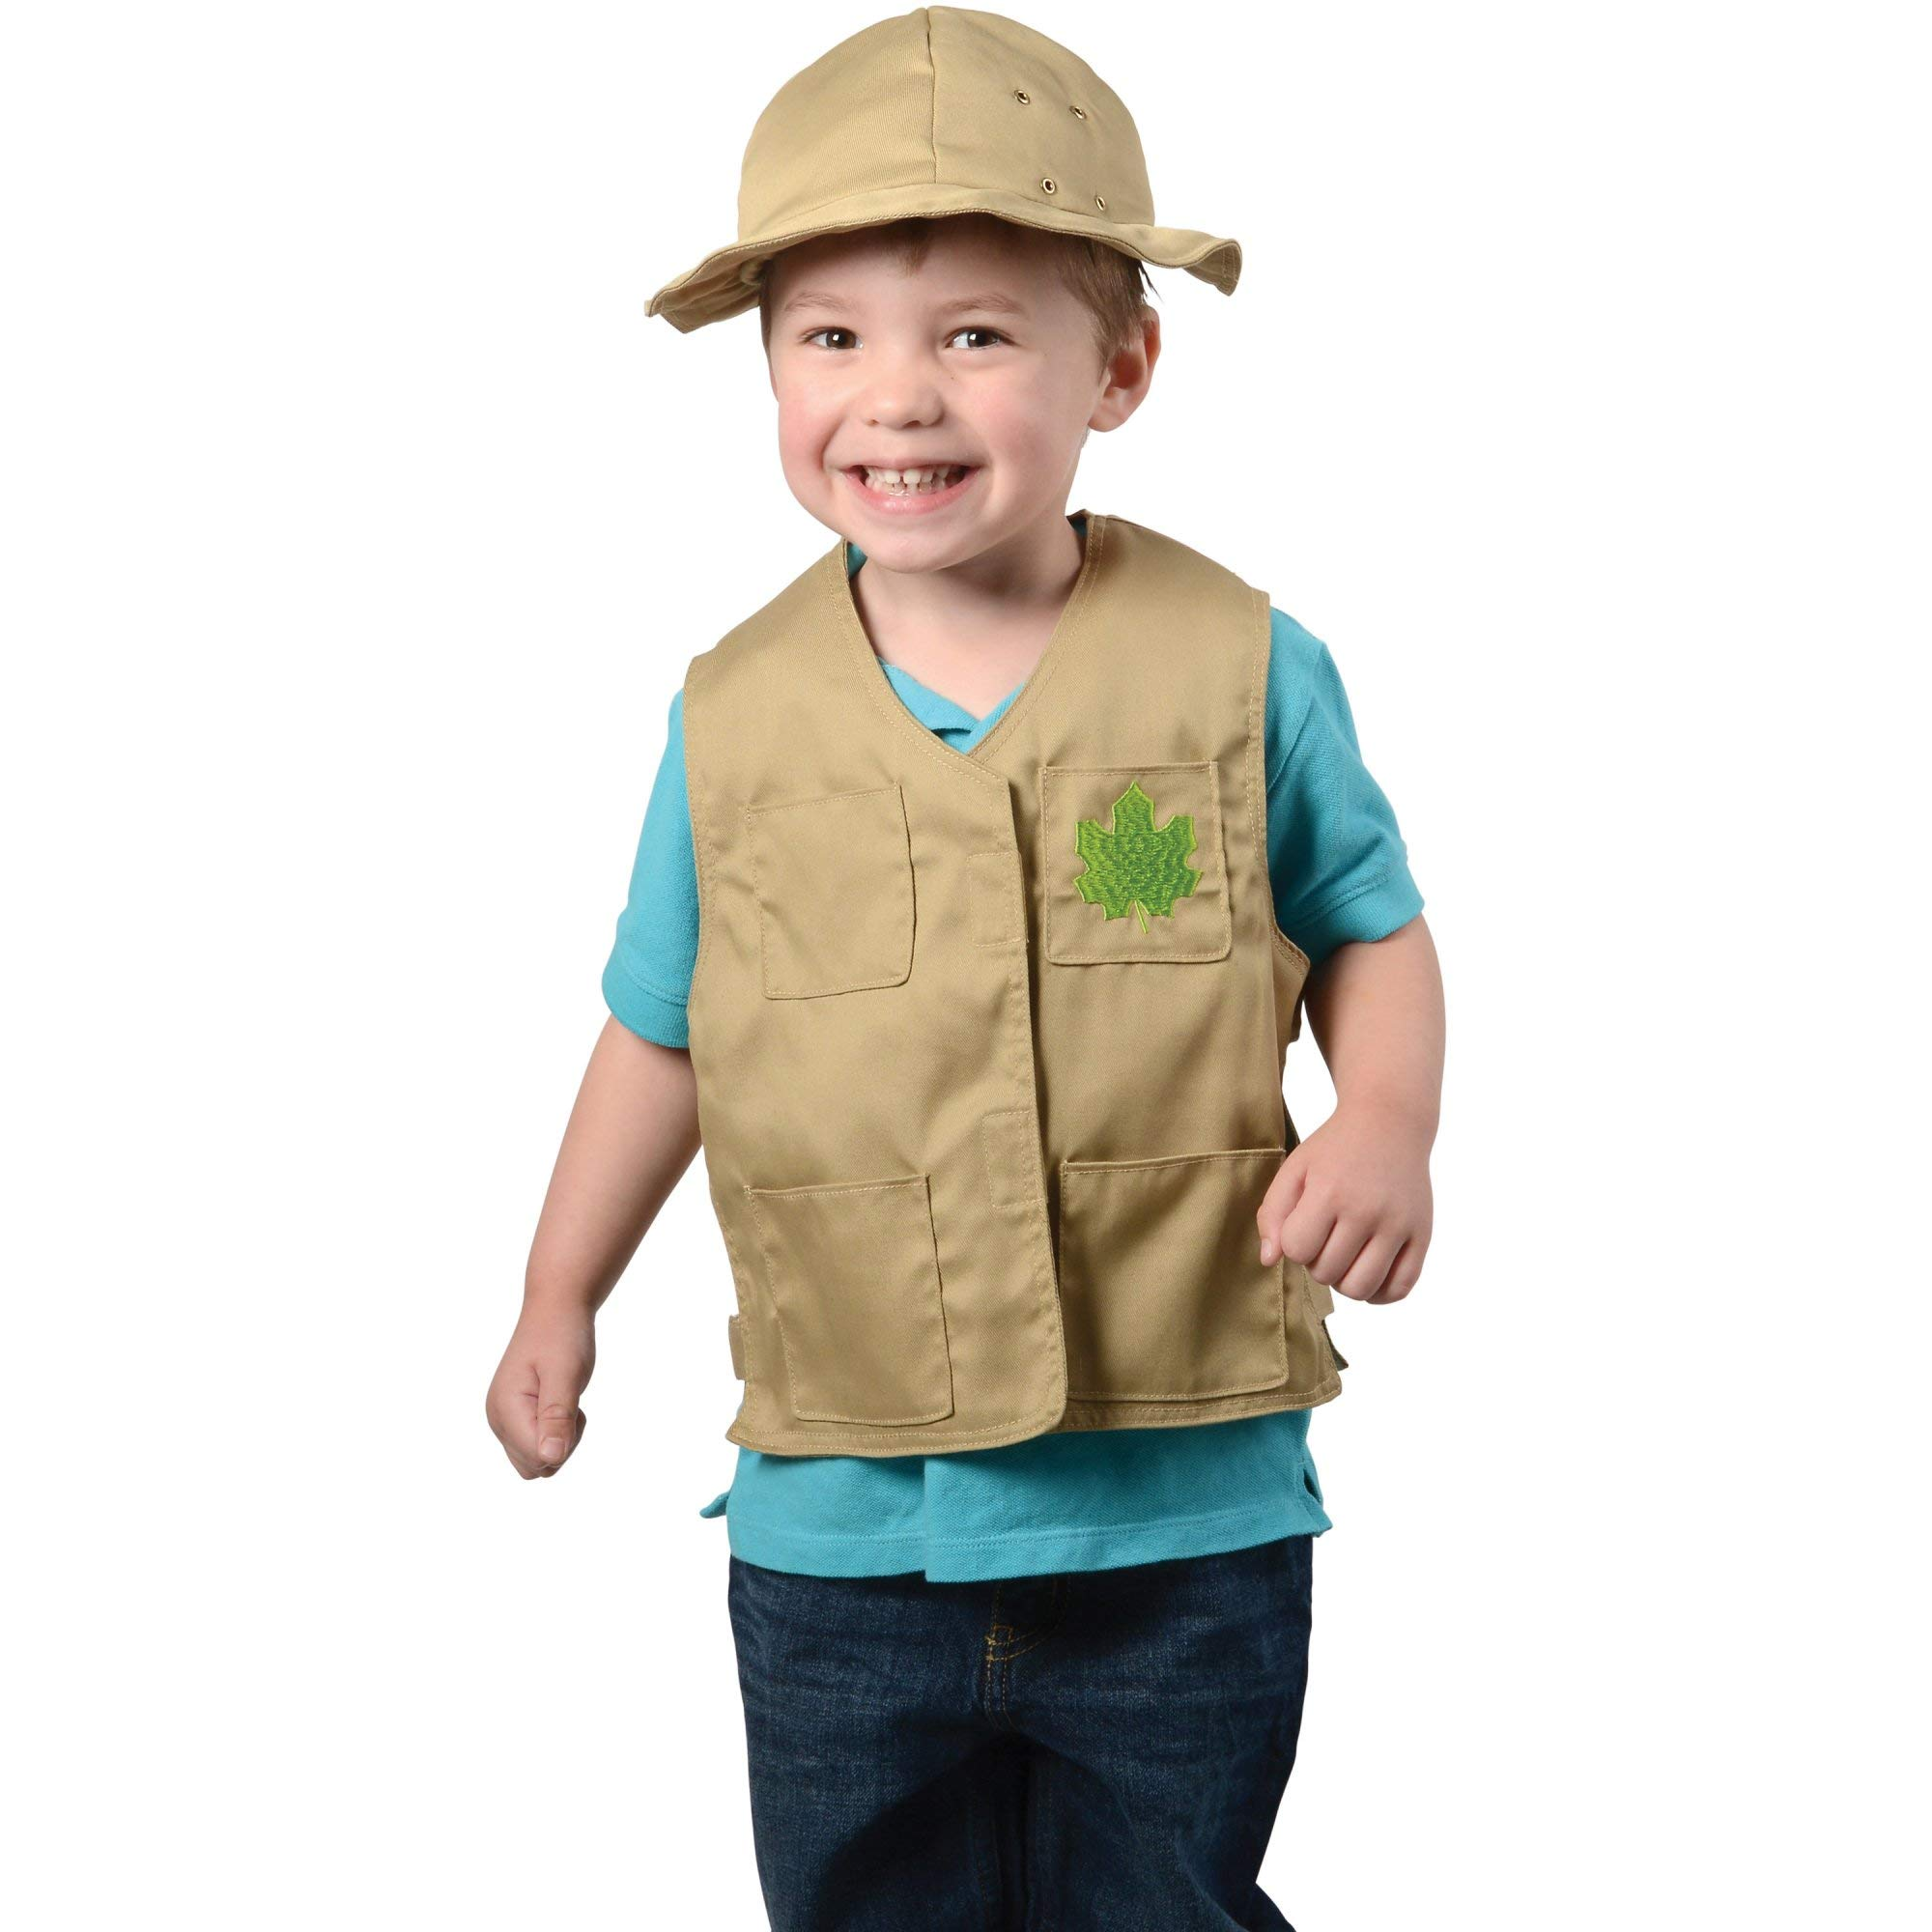 Toddler Dress-Up Vests & Hats Nature Explorer by Marvel